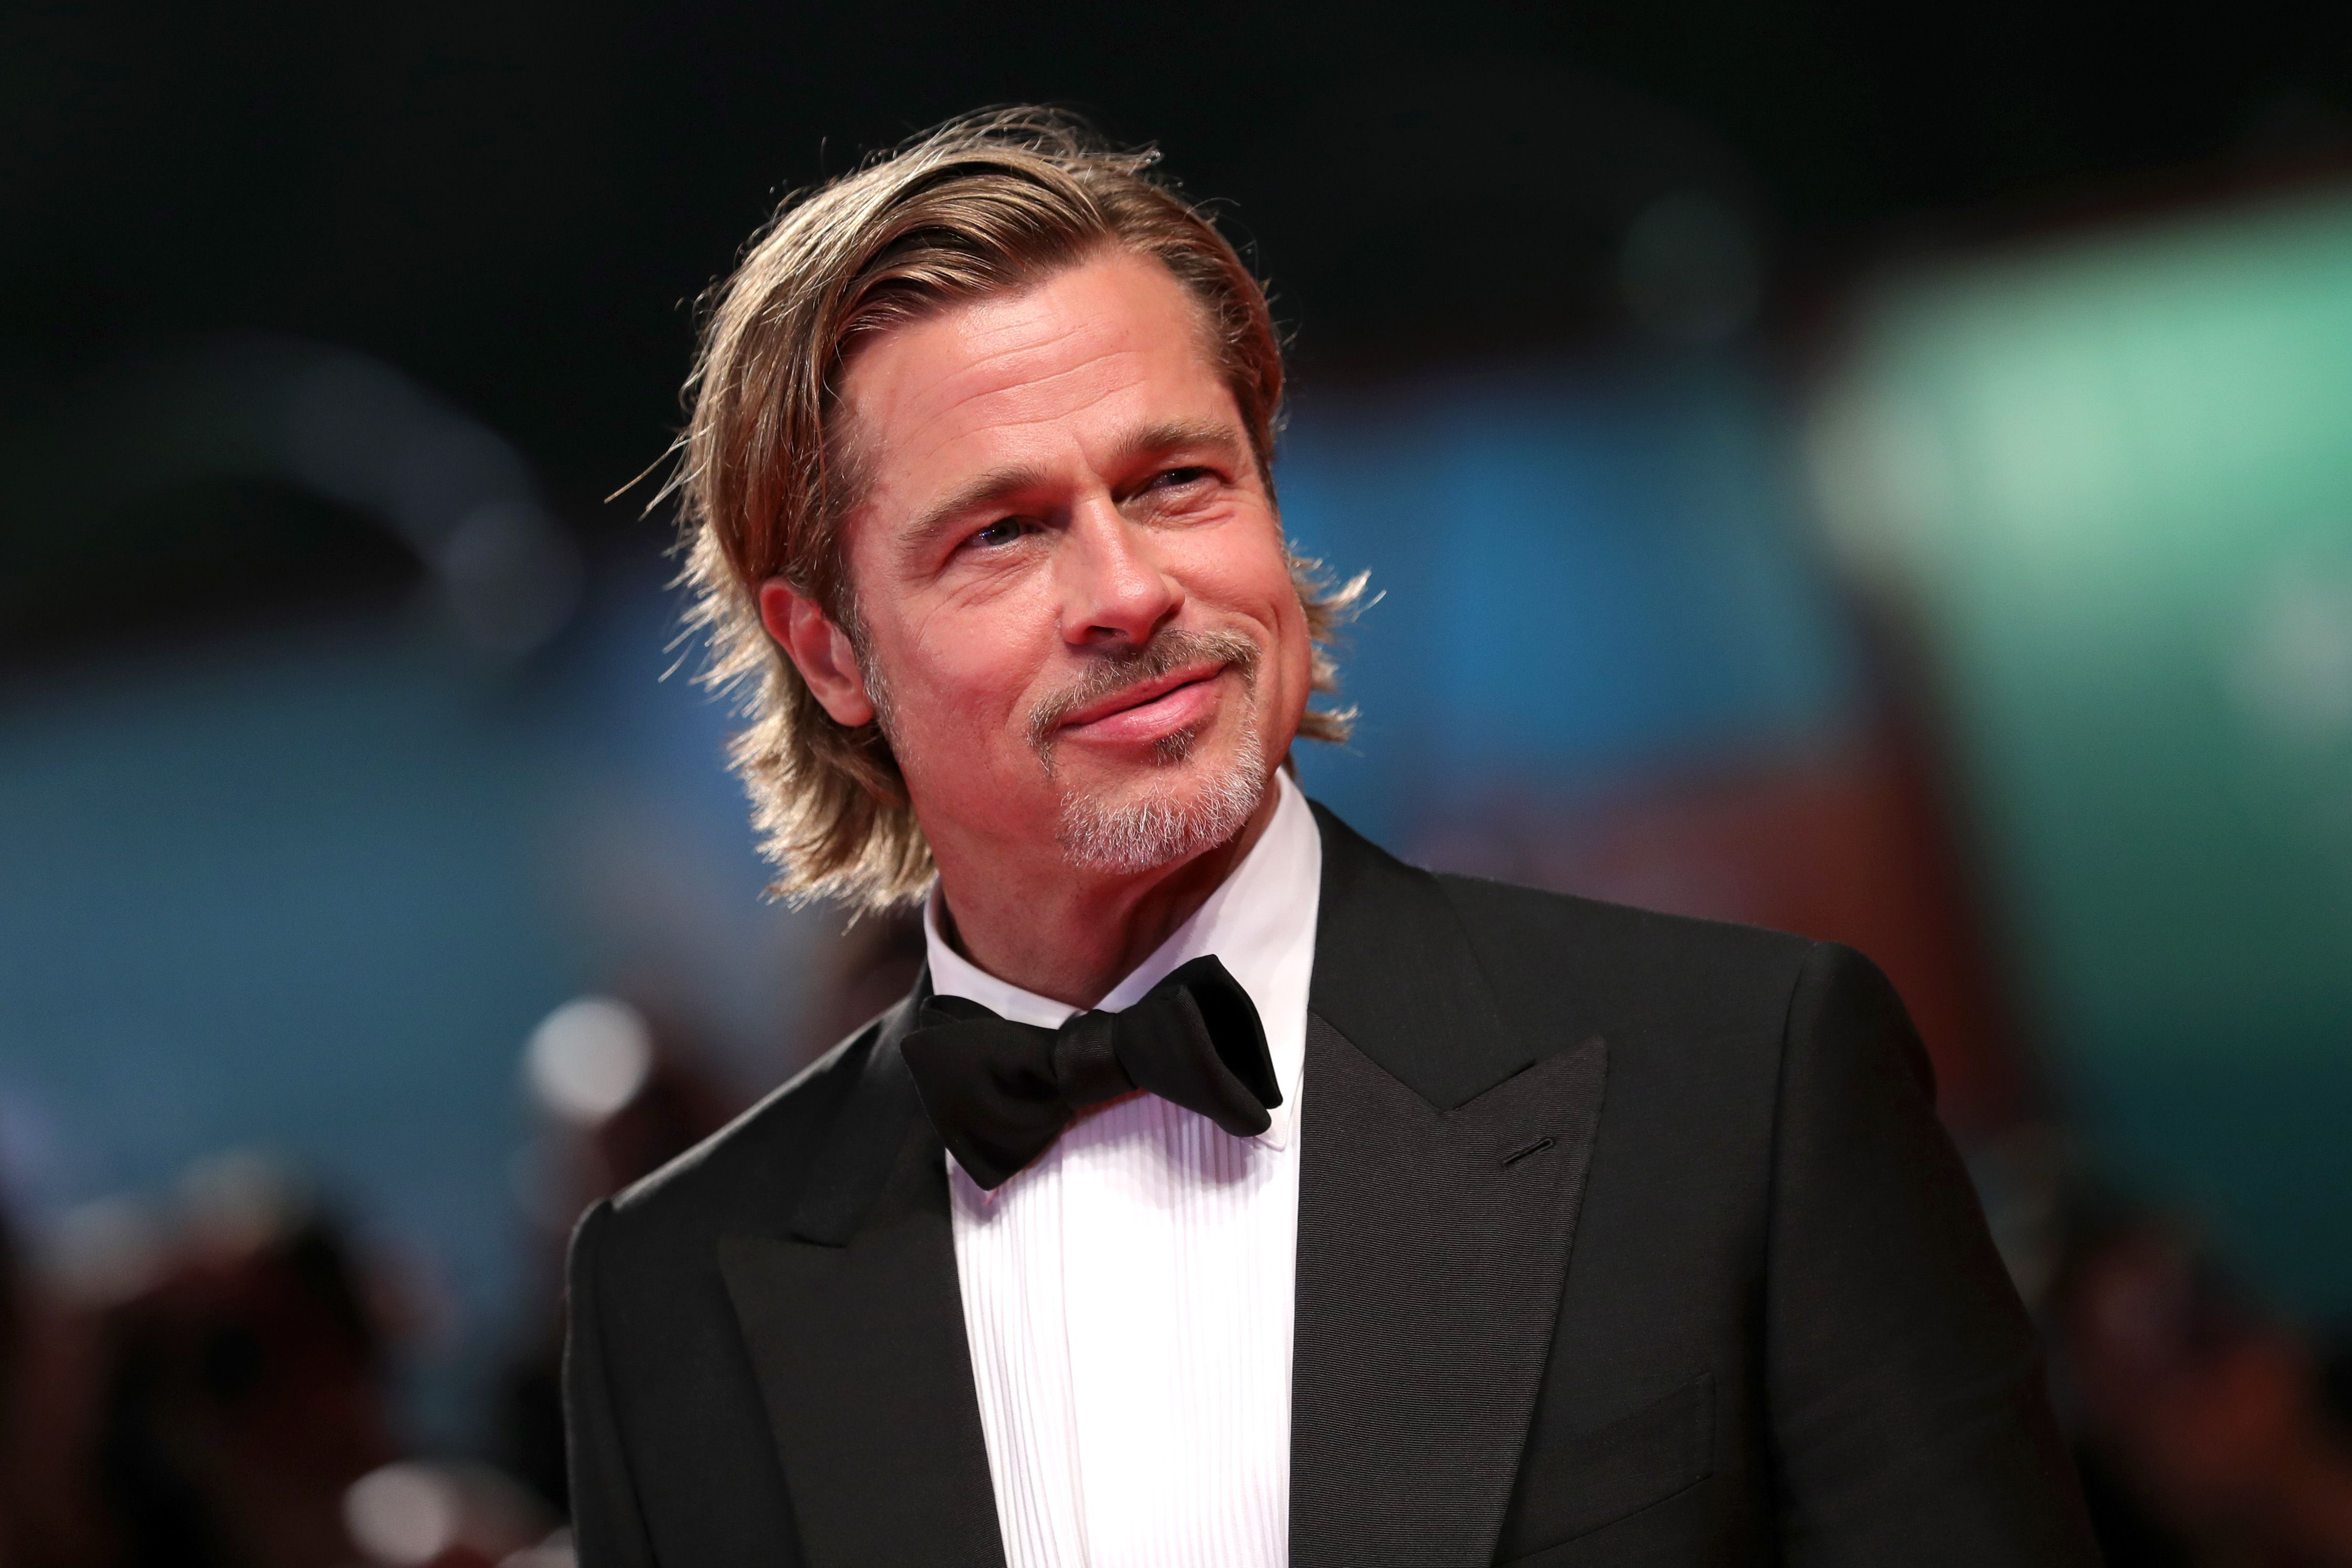 Brad Pitt attends the Oscars luncheon wearing a name tag